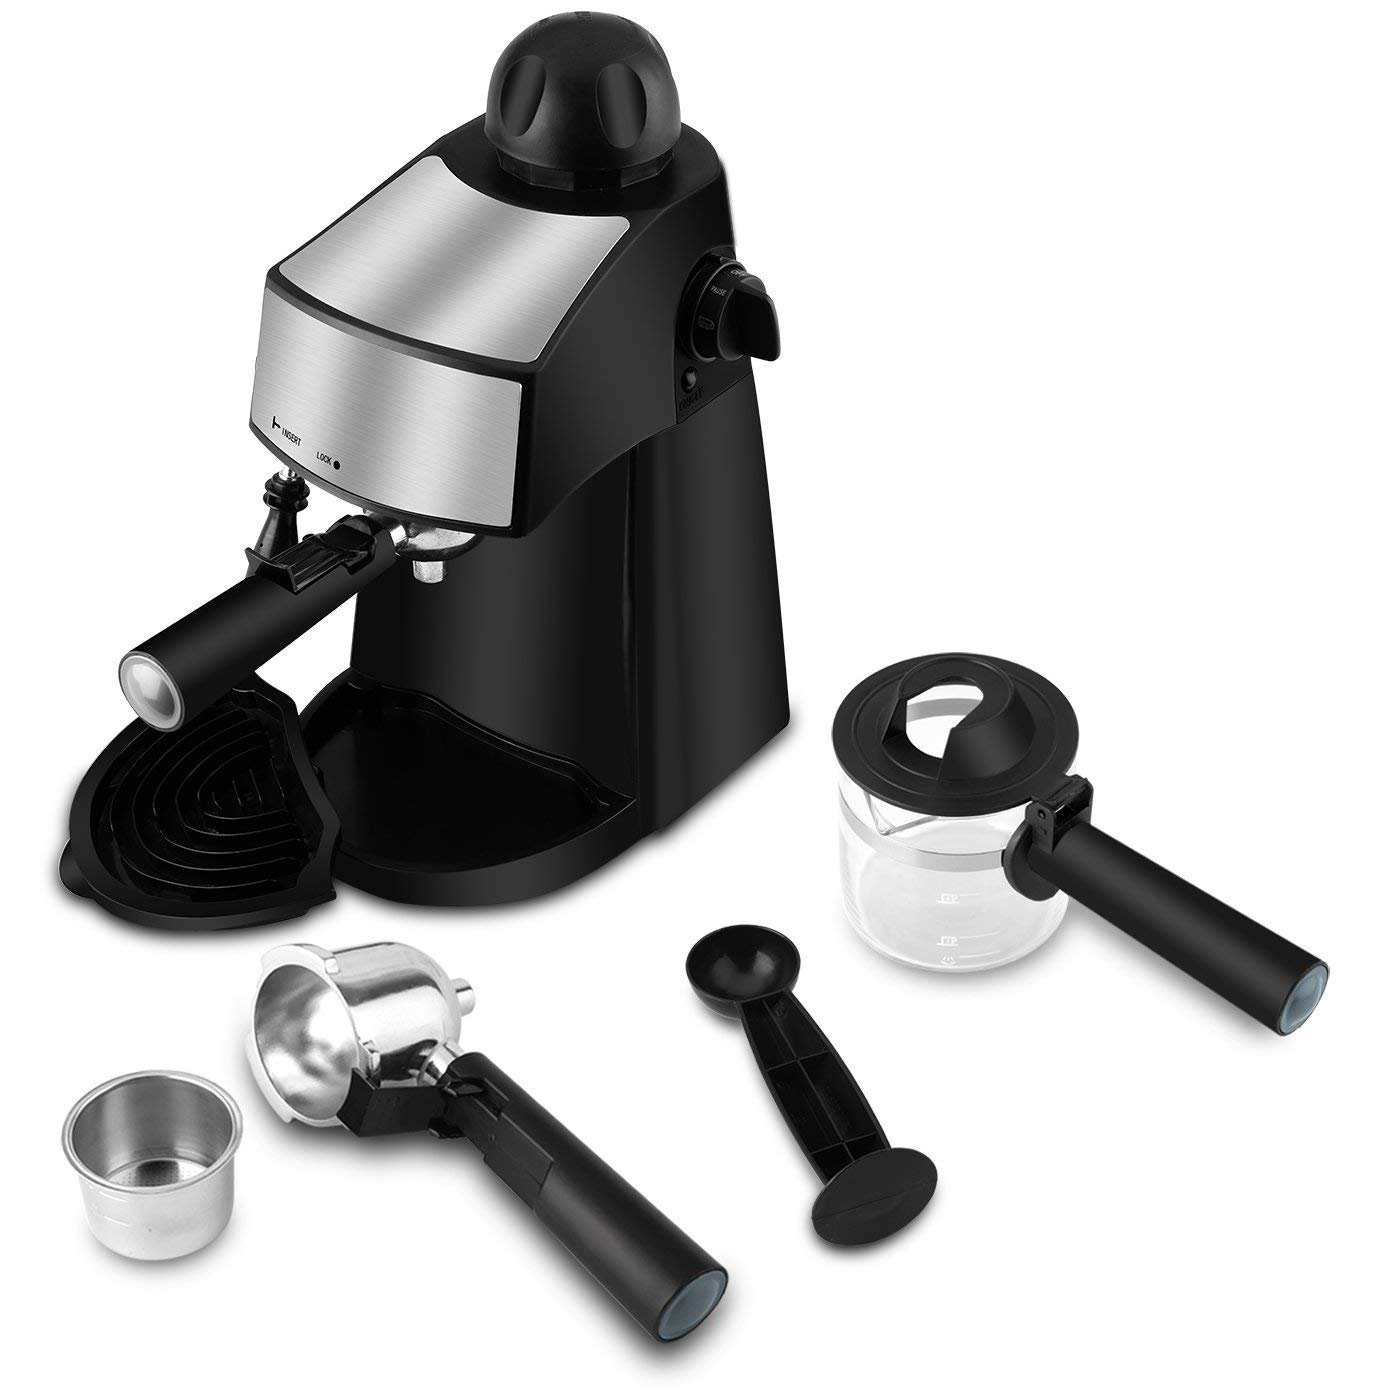 Steam Espresso Machine 800W 4 Cup Stainless Steel Espresso Cappuccino Latte Coffee Maker with Milk Frother and Carafe by SOWTECH (Image #5)